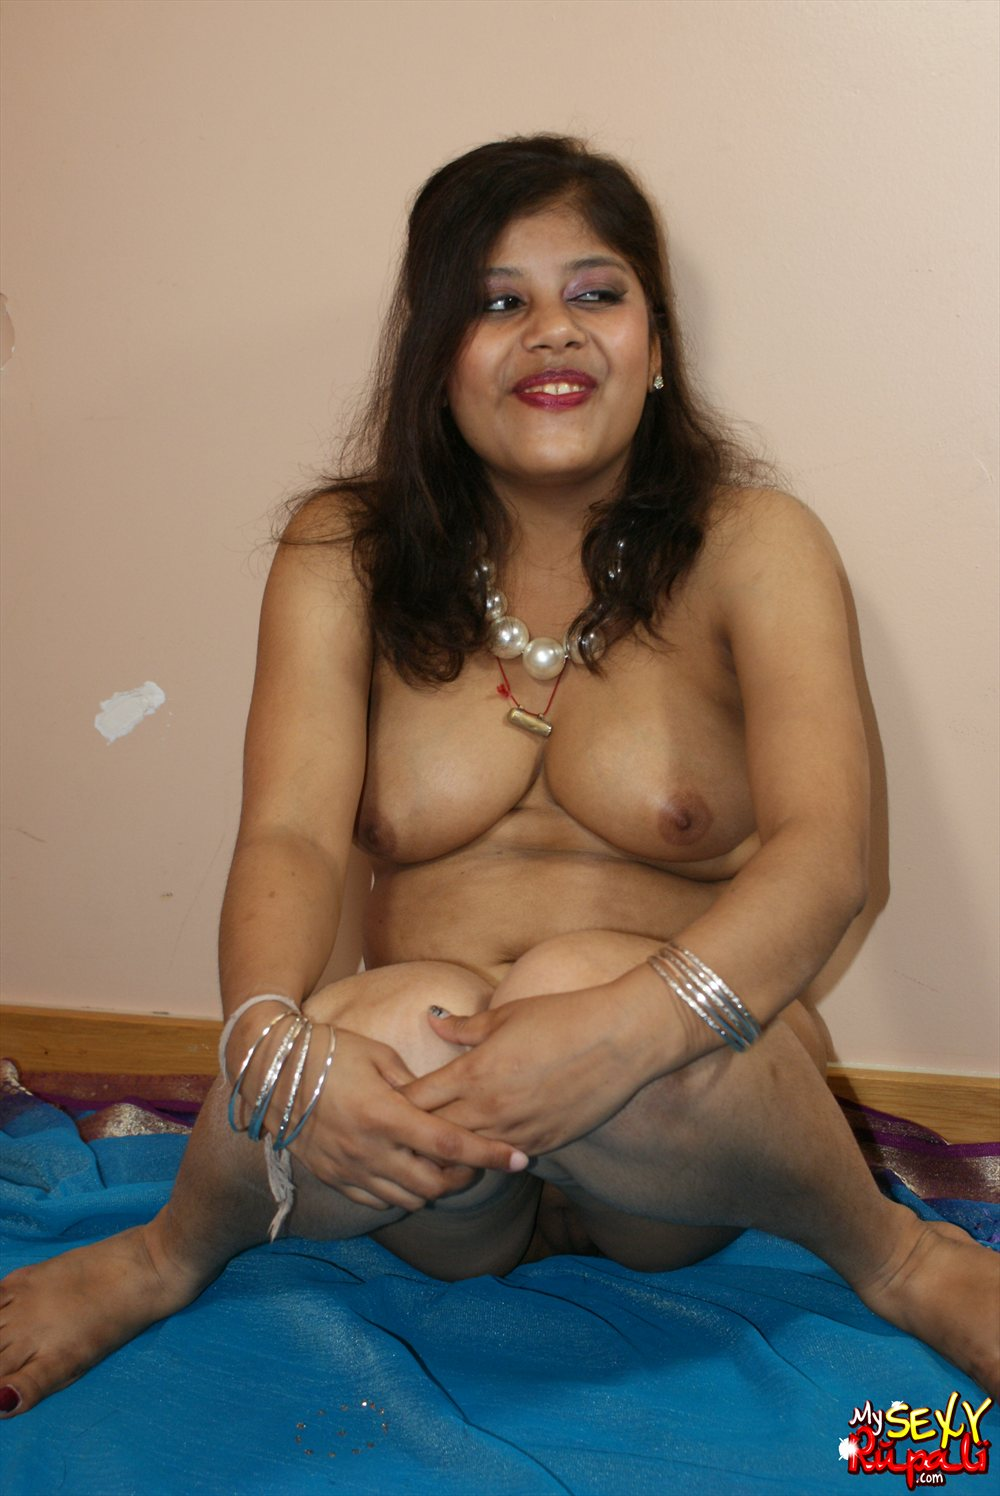 my sexy rupali - hot indian rupali in indian sari stripping naked